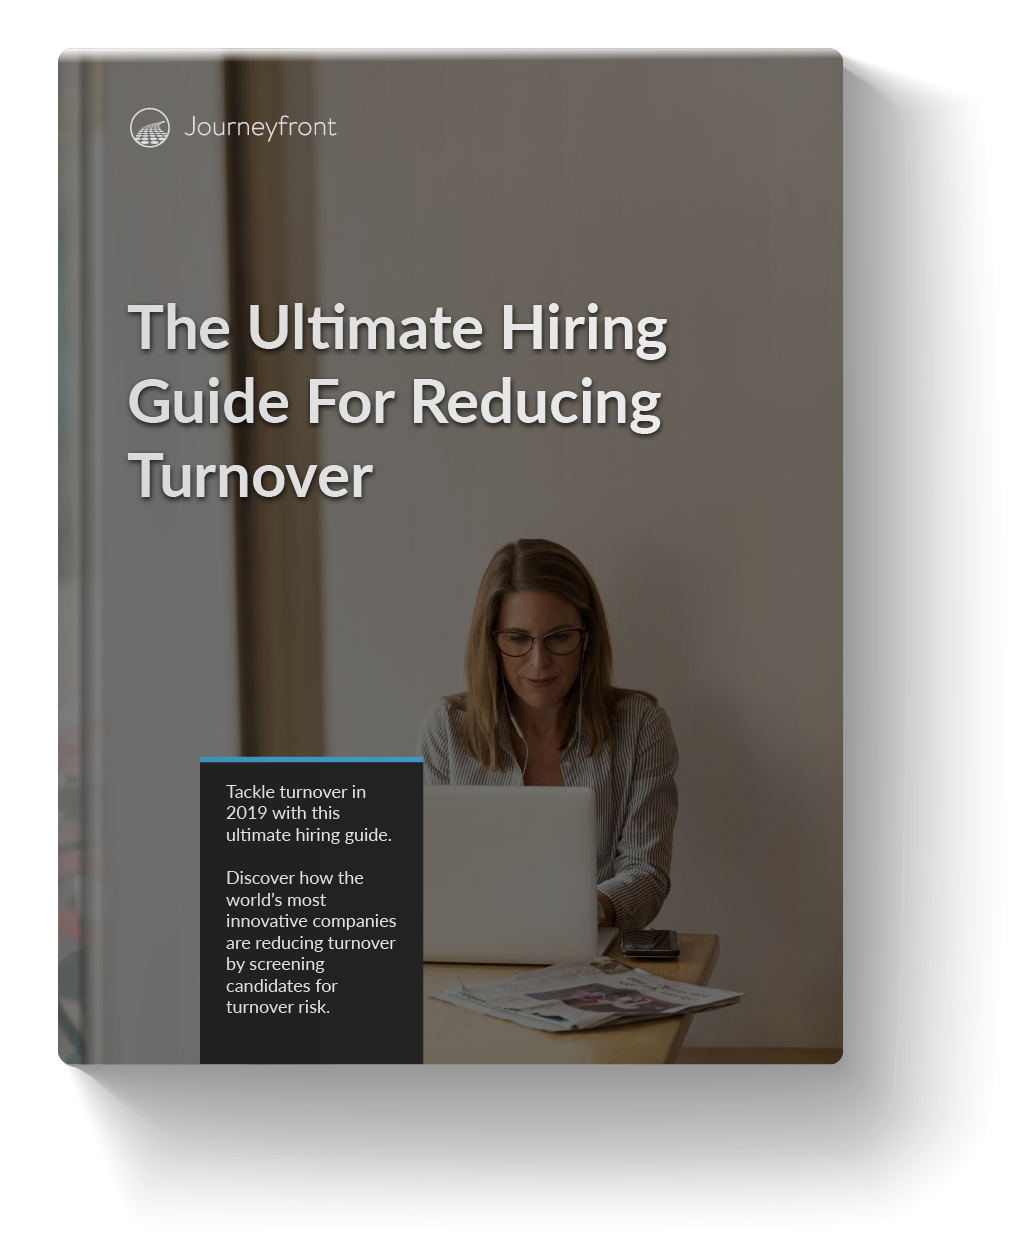 The Ultimate Hiring Guide for Reducing Turnover